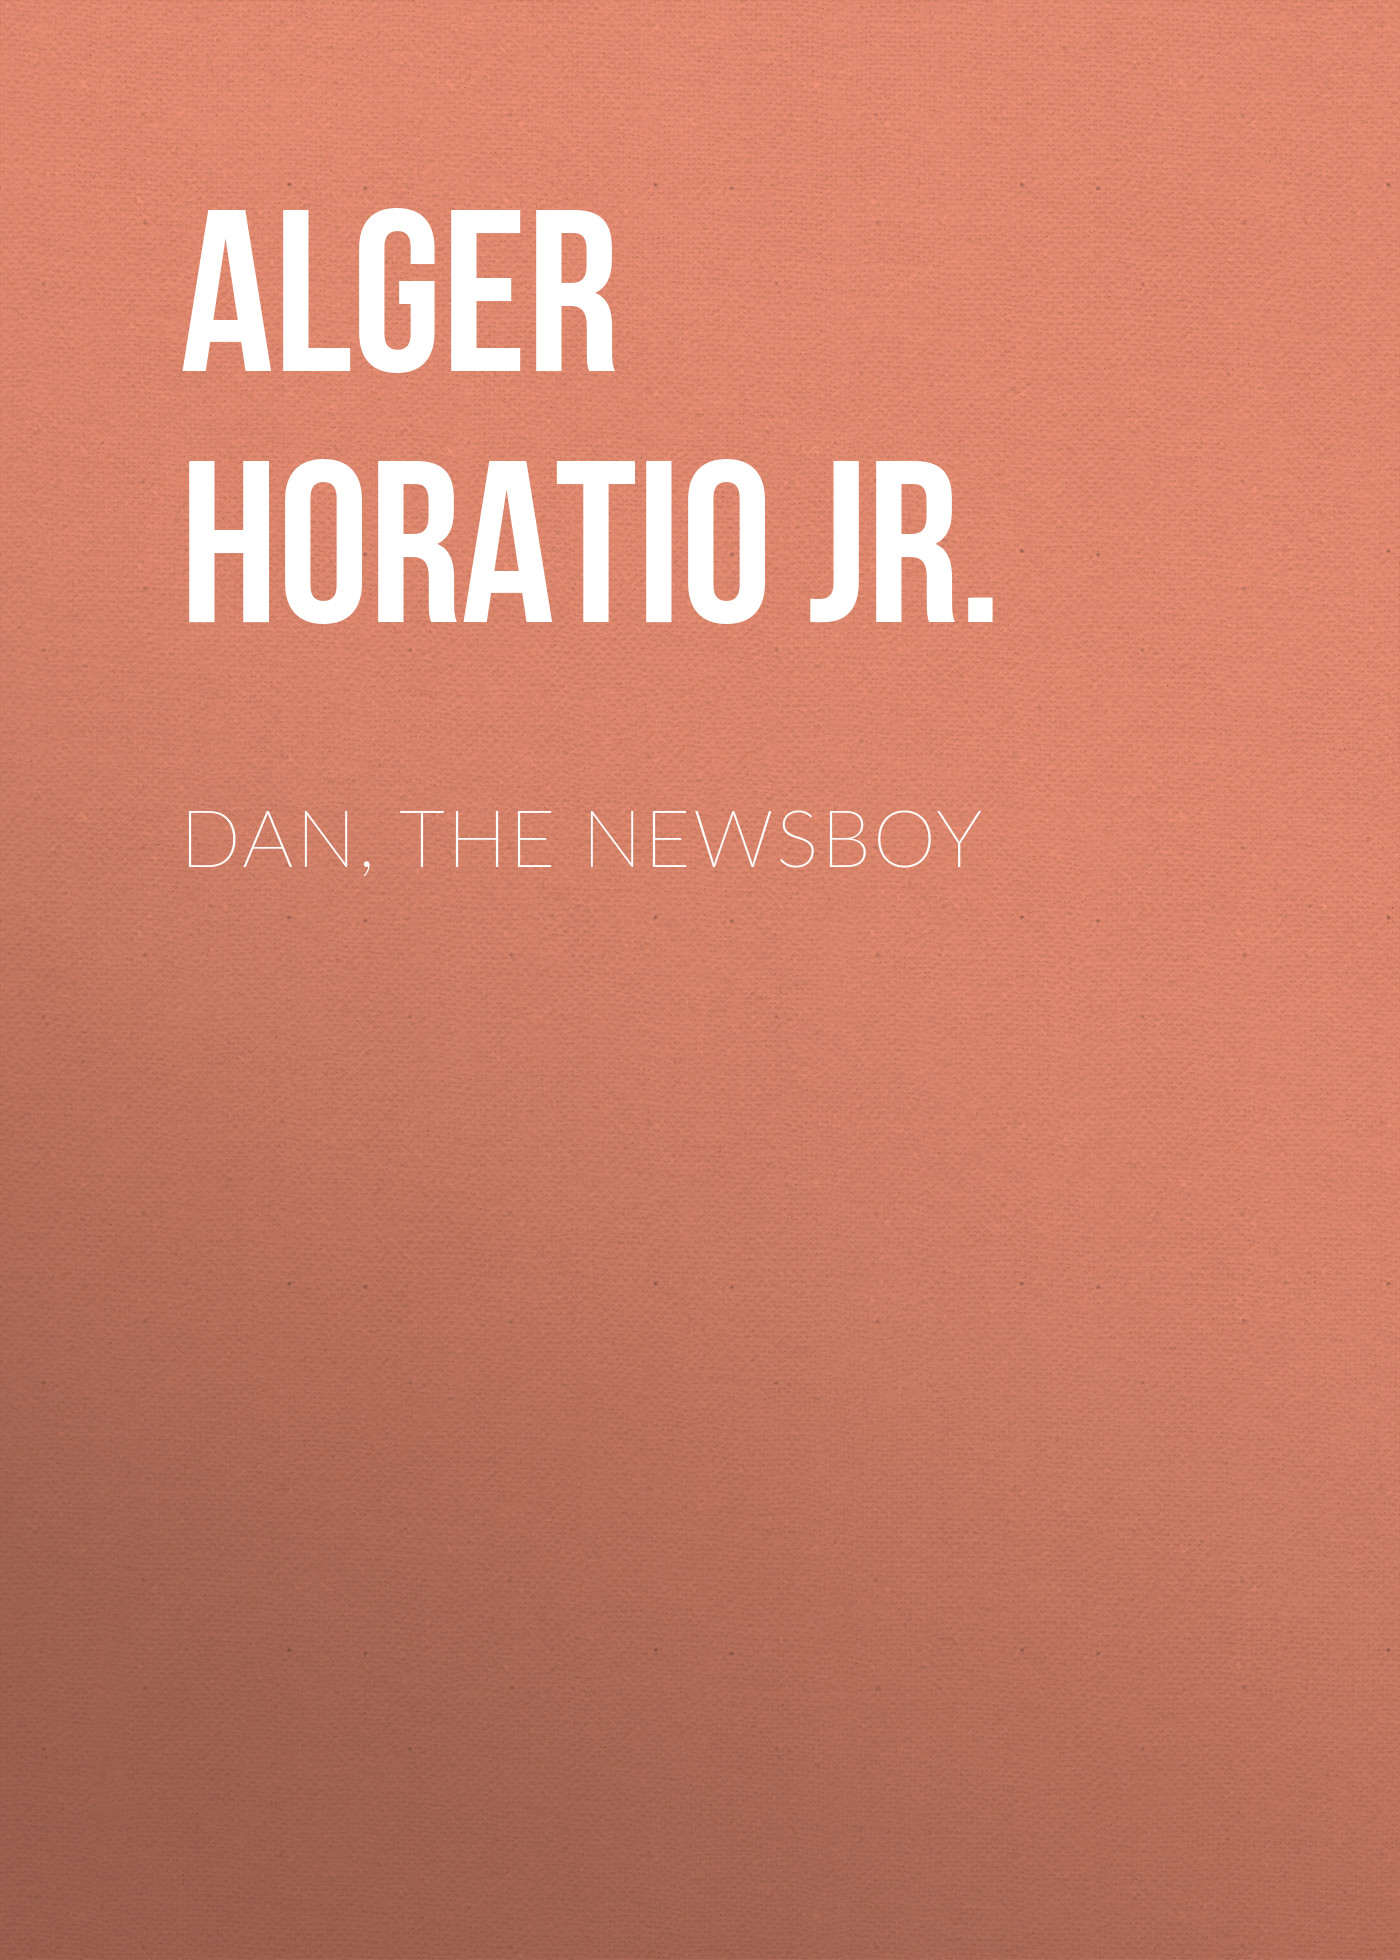 Alger Horatio Jr. Dan, The Newsboy newsboy hat with veil